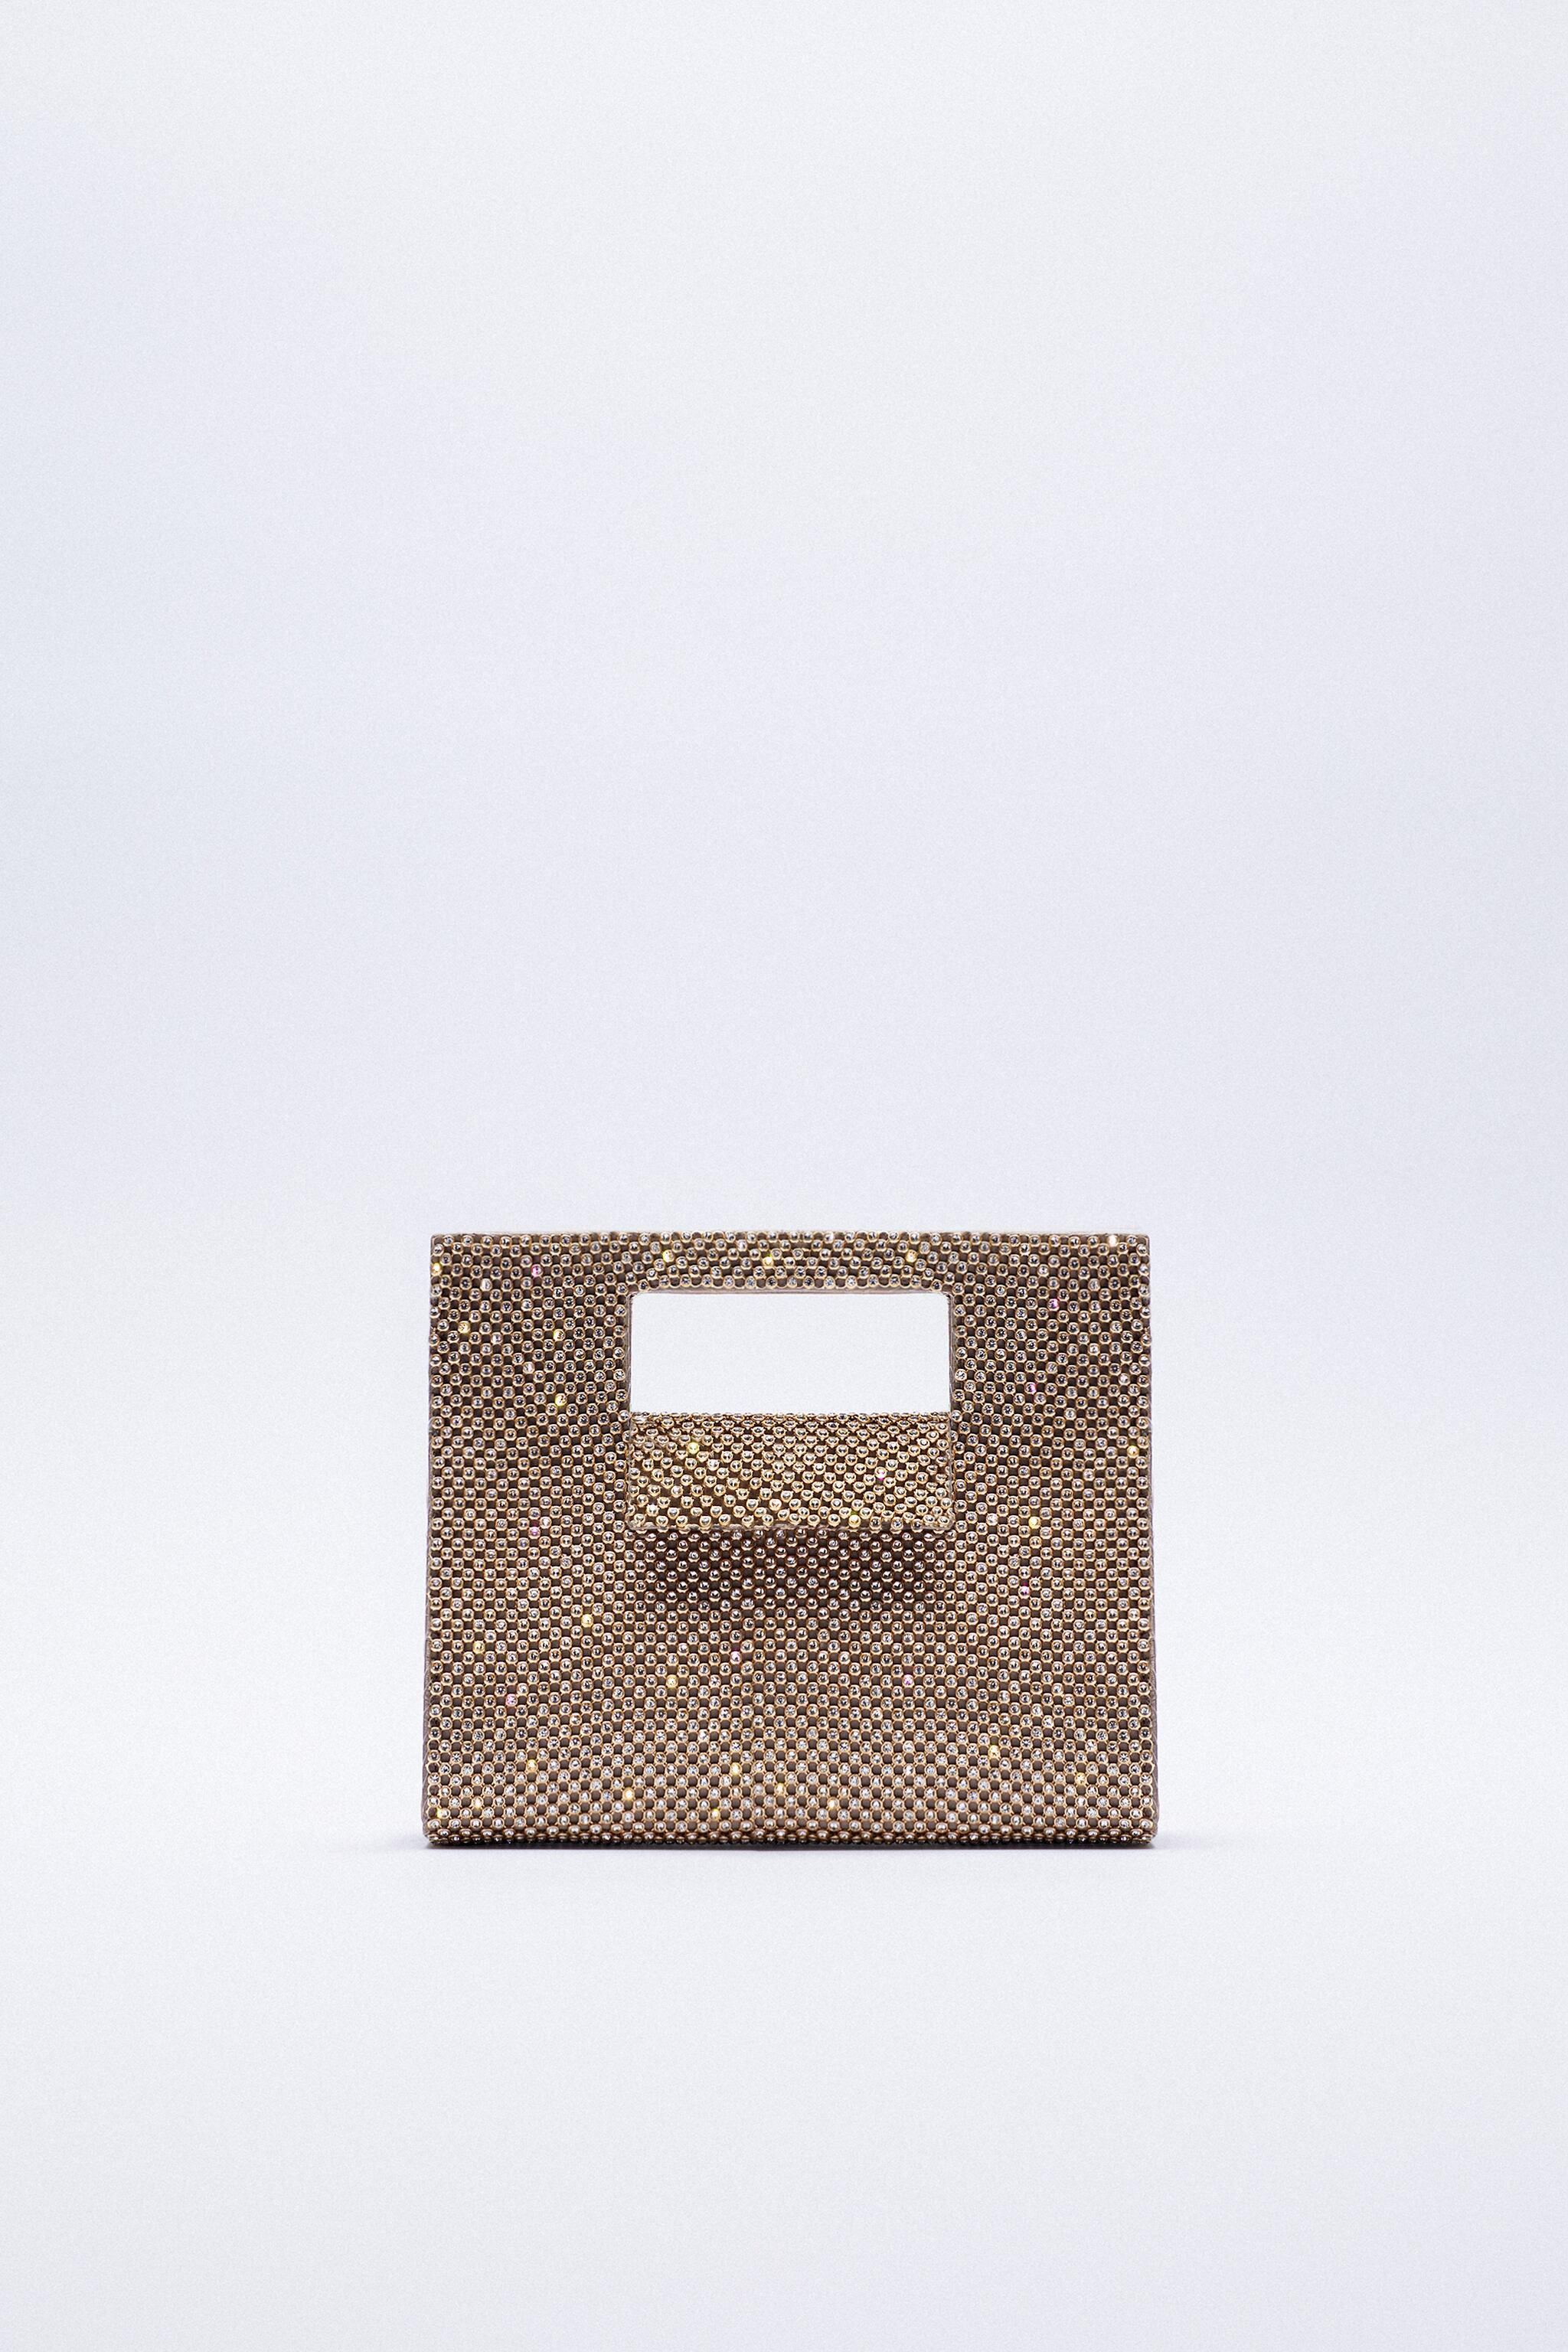 CUT OUT SHIMMERY BOX BAG